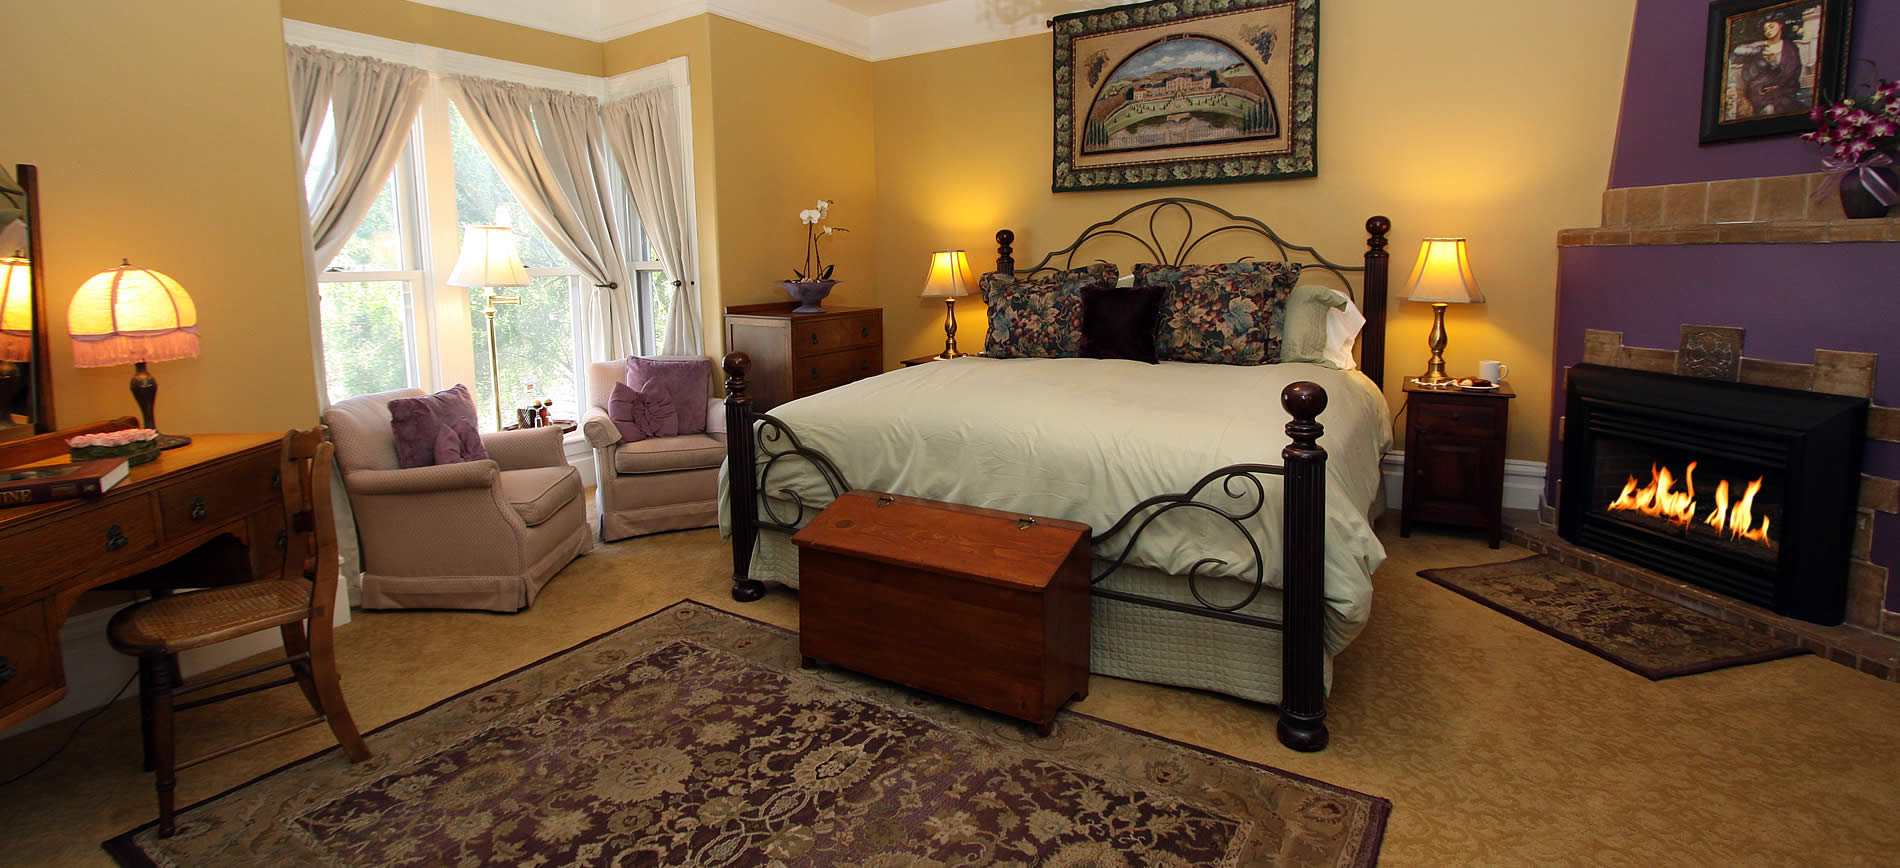 guestroom at napa bed and breakfast inn